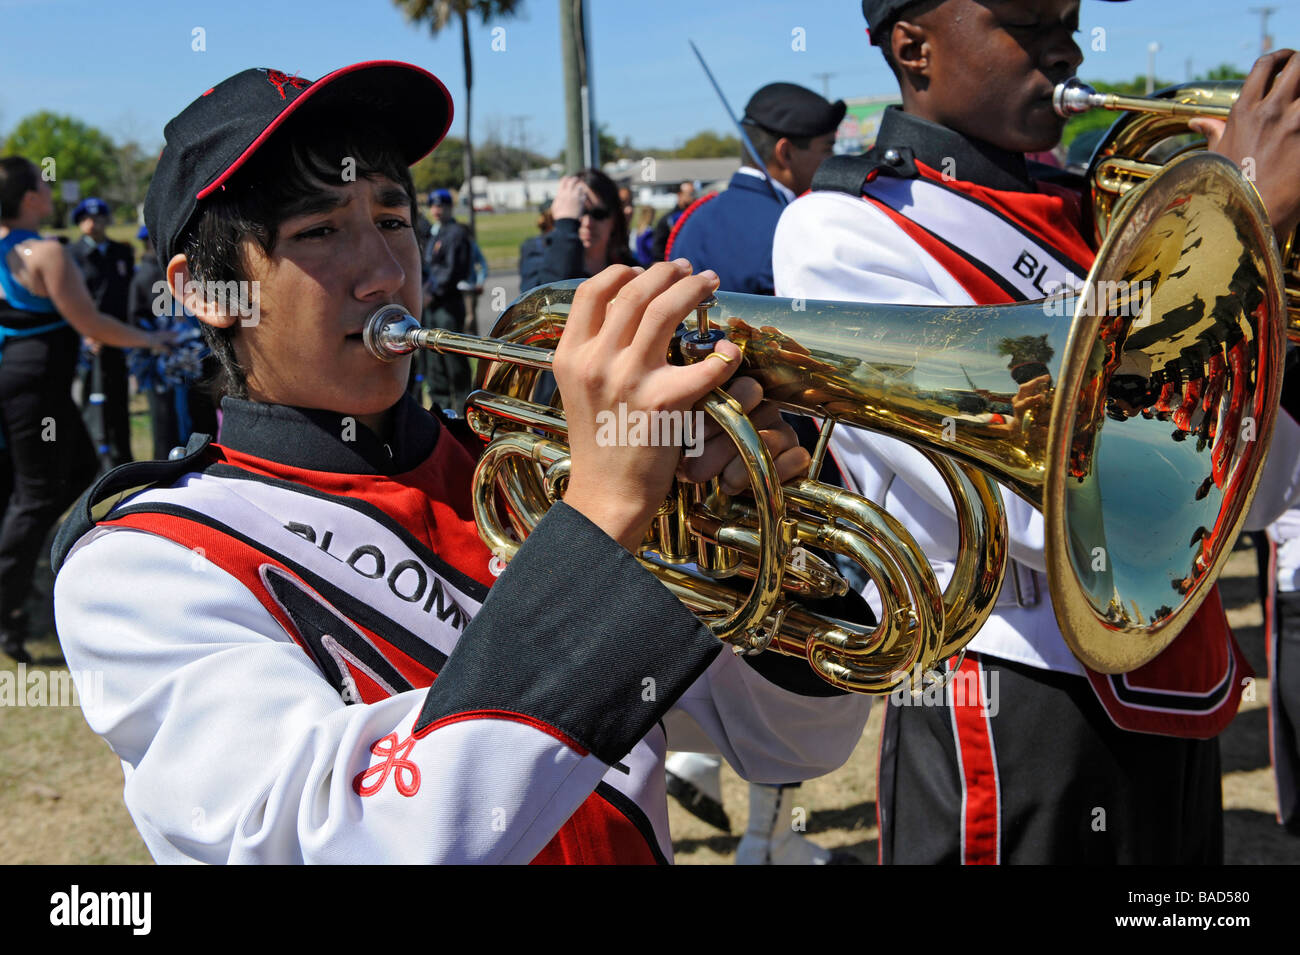 High School Band Member plays french horn at Strawberry Festival Parade Plant City Florida - Stock Image